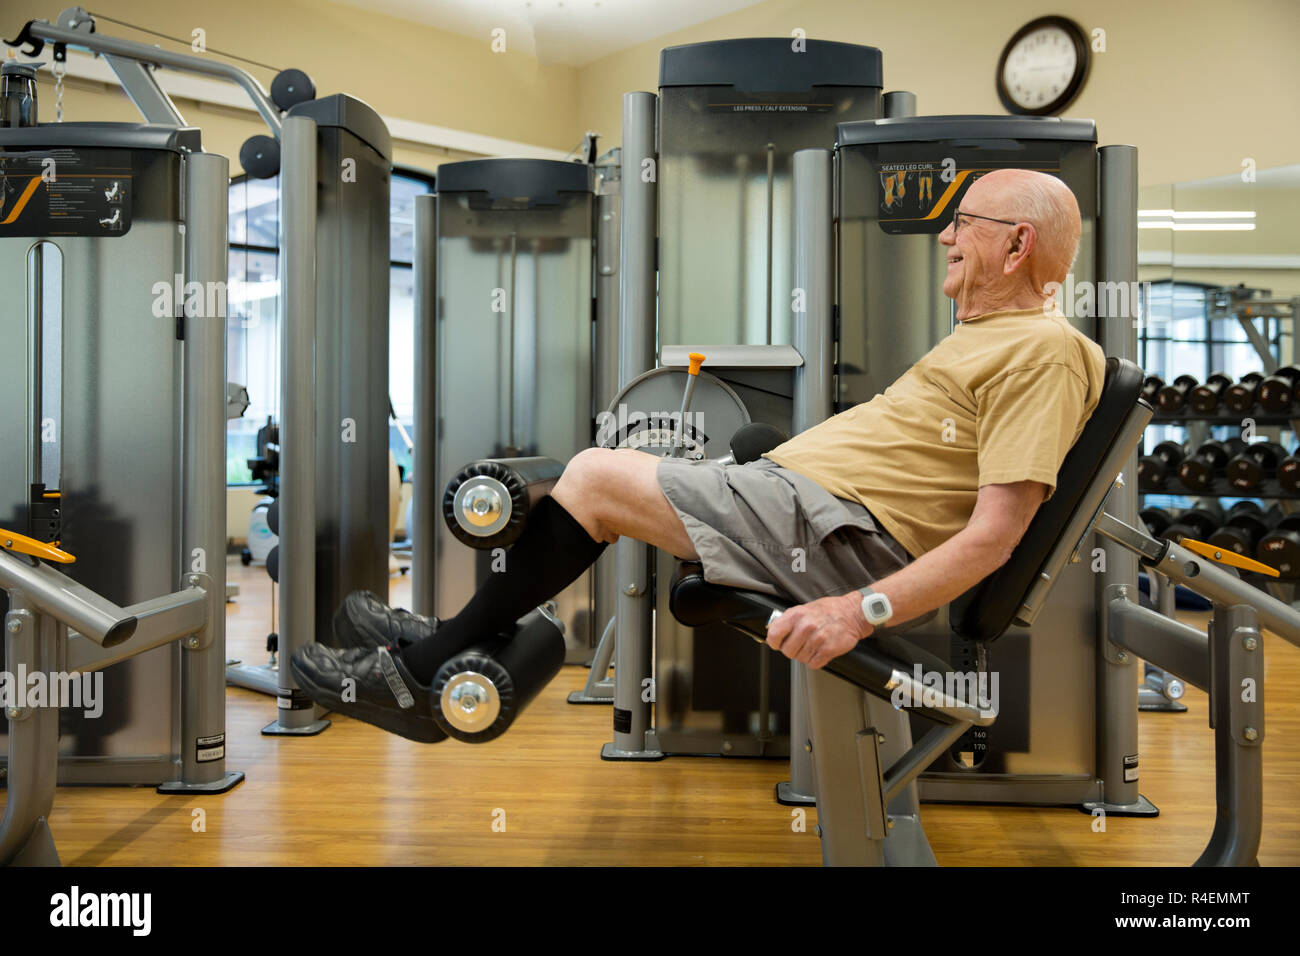 An Active Senior Male Working Out In The Gym - Stock Image